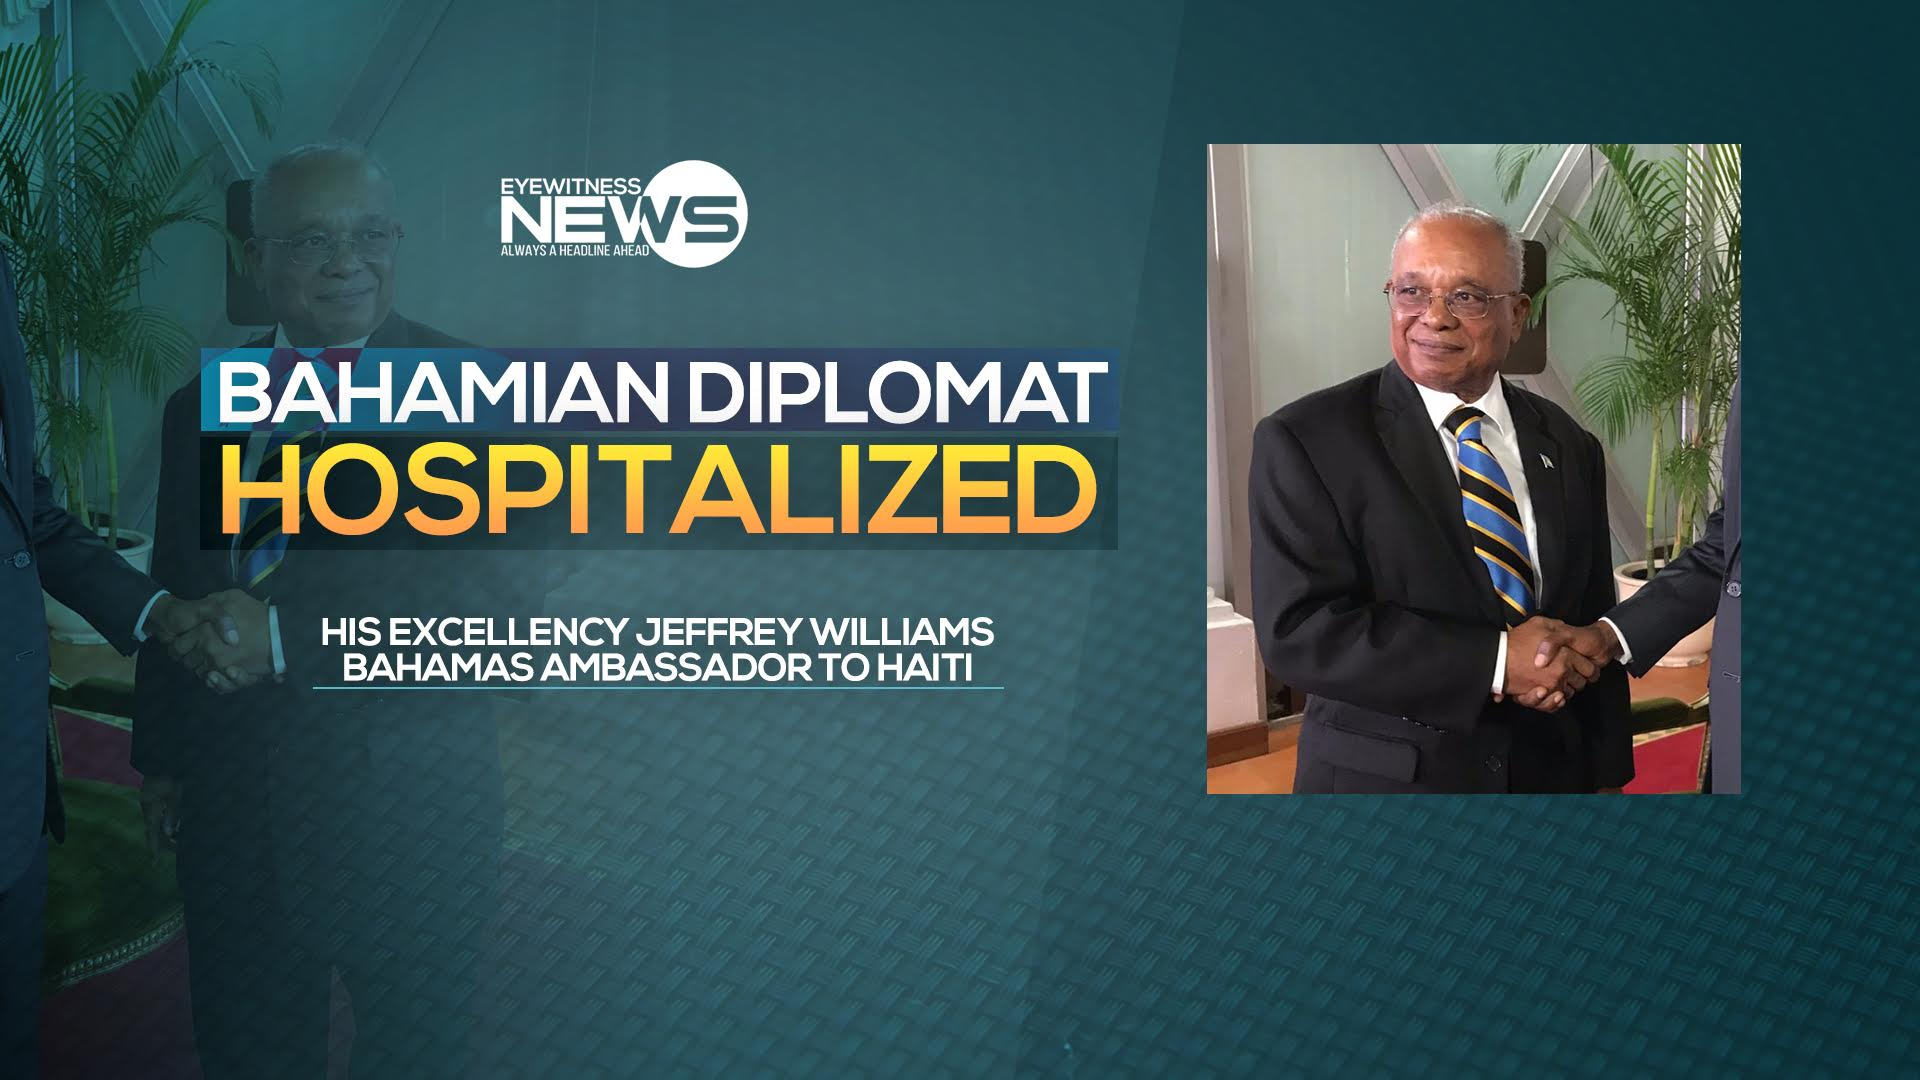 Bahamian Ambassador to Haiti airlifted home